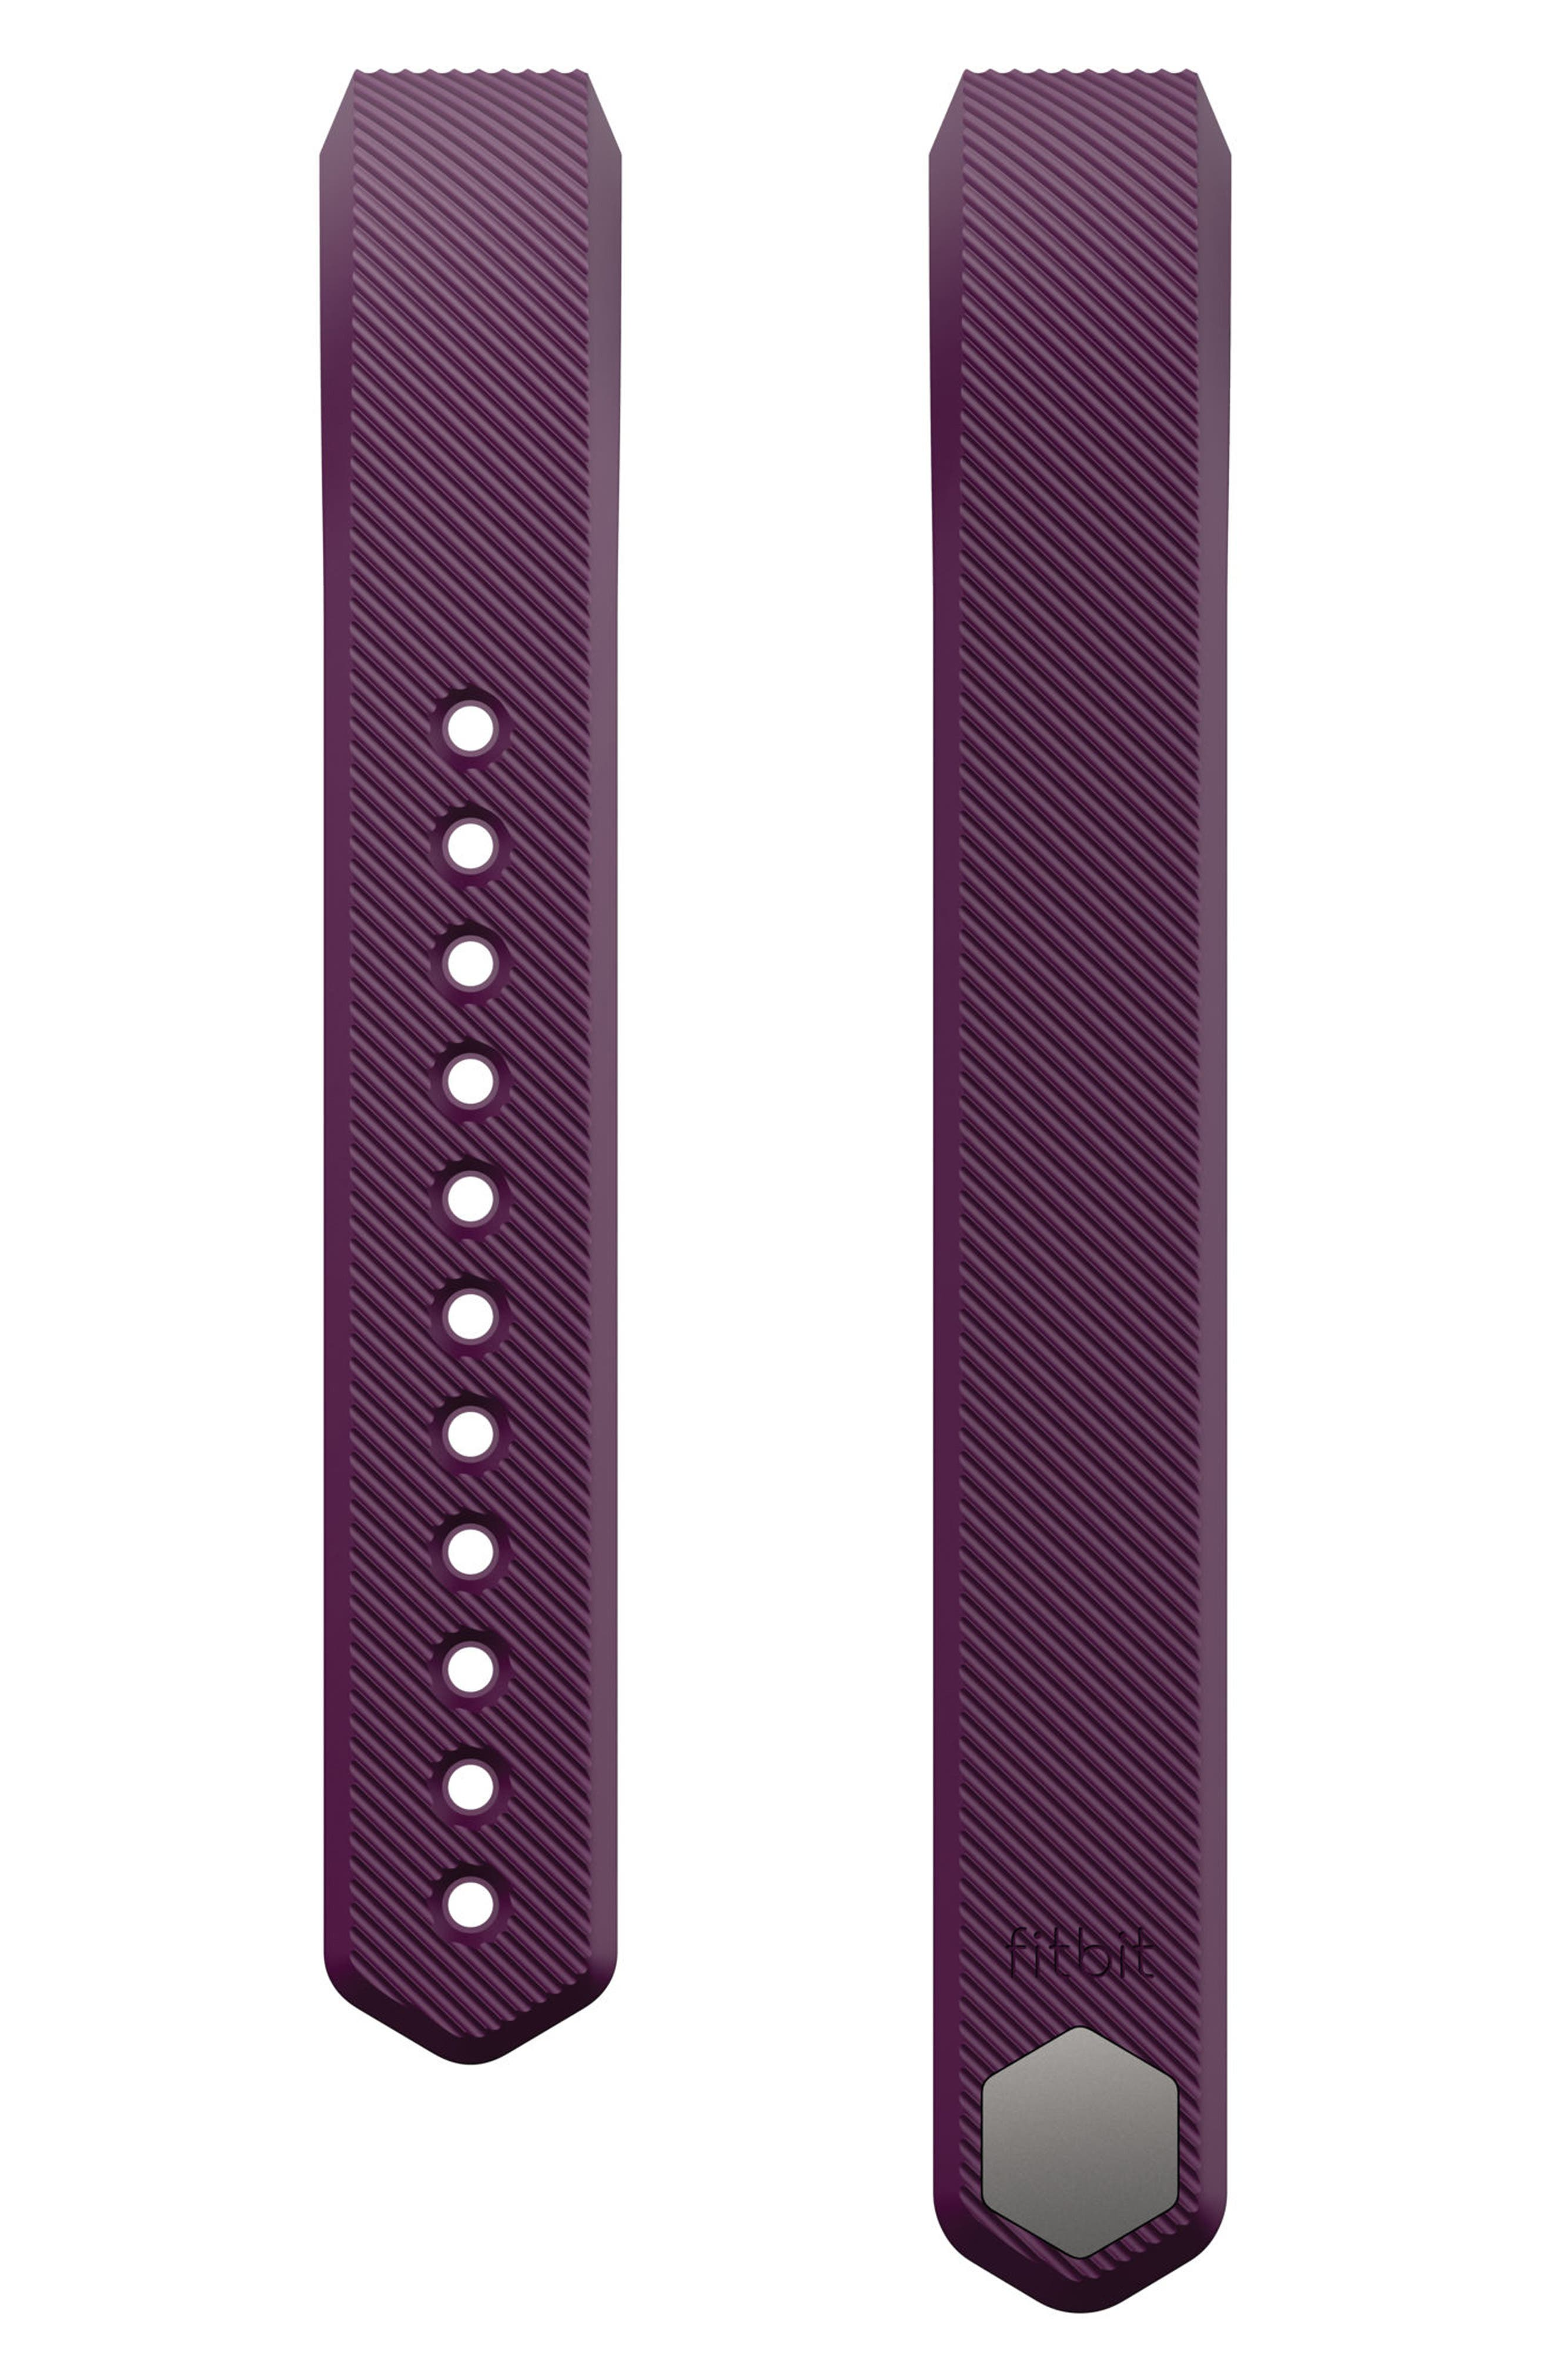 Main Image - Fitbit Alta Classic Fitness Watch Band